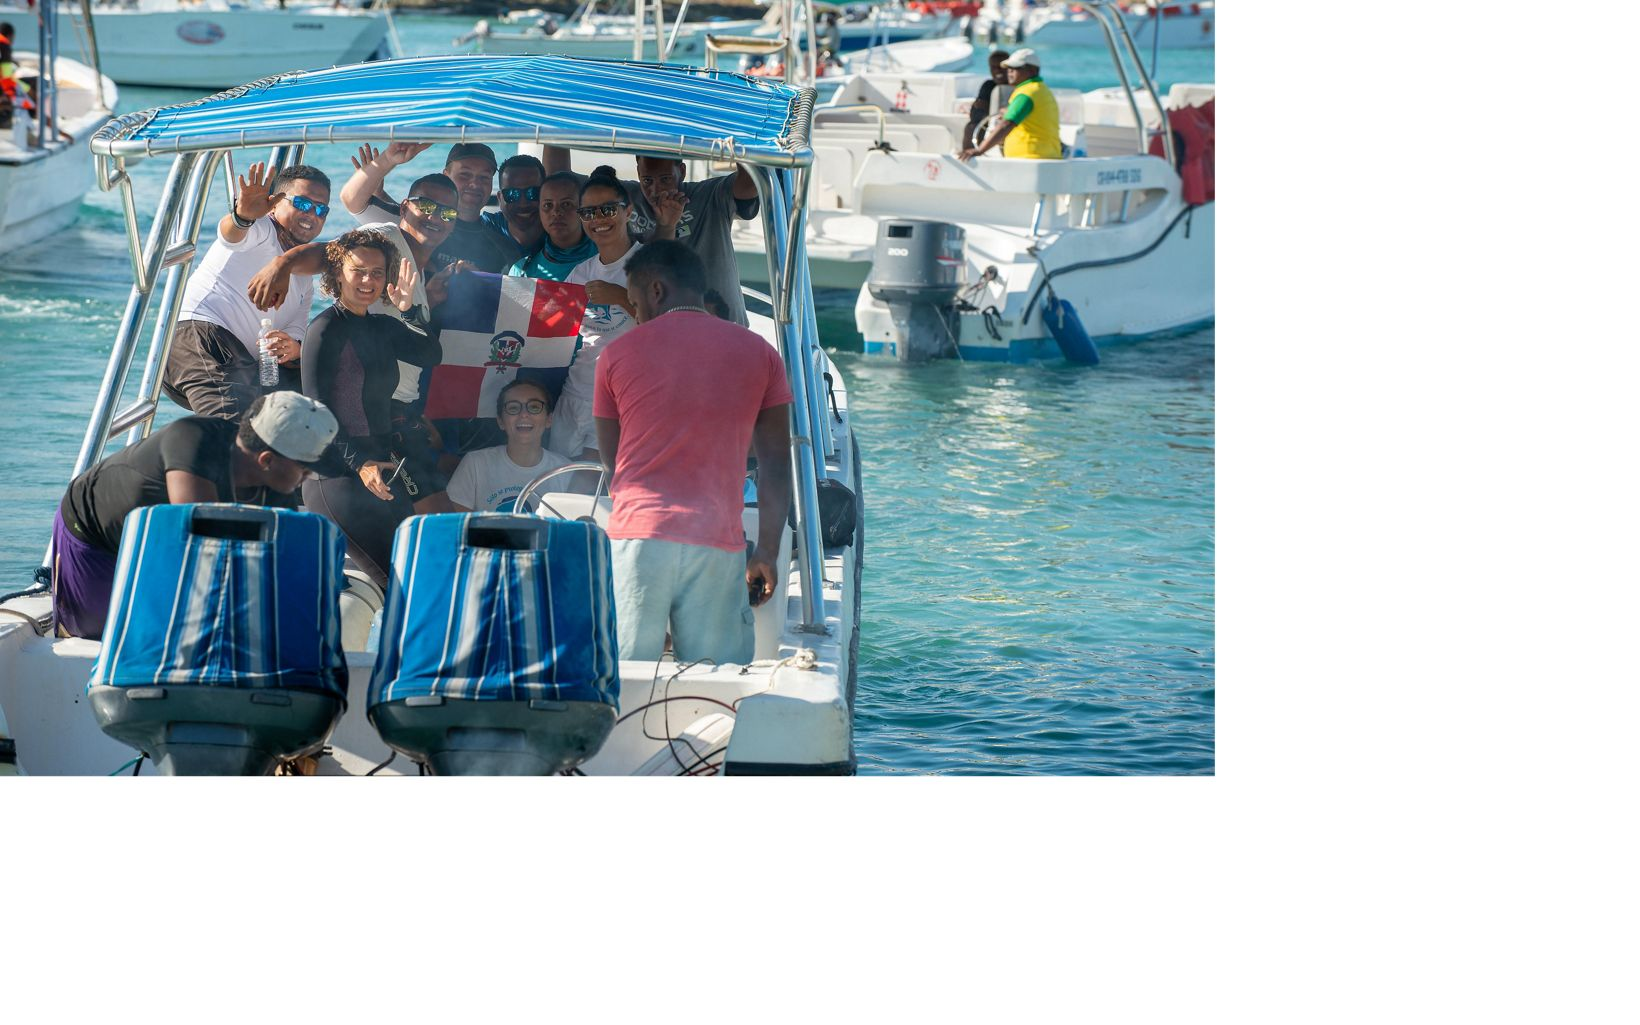 Rita Sellares, in her black wetsuit, and crew of divers wave goodbye as they set off to dive.